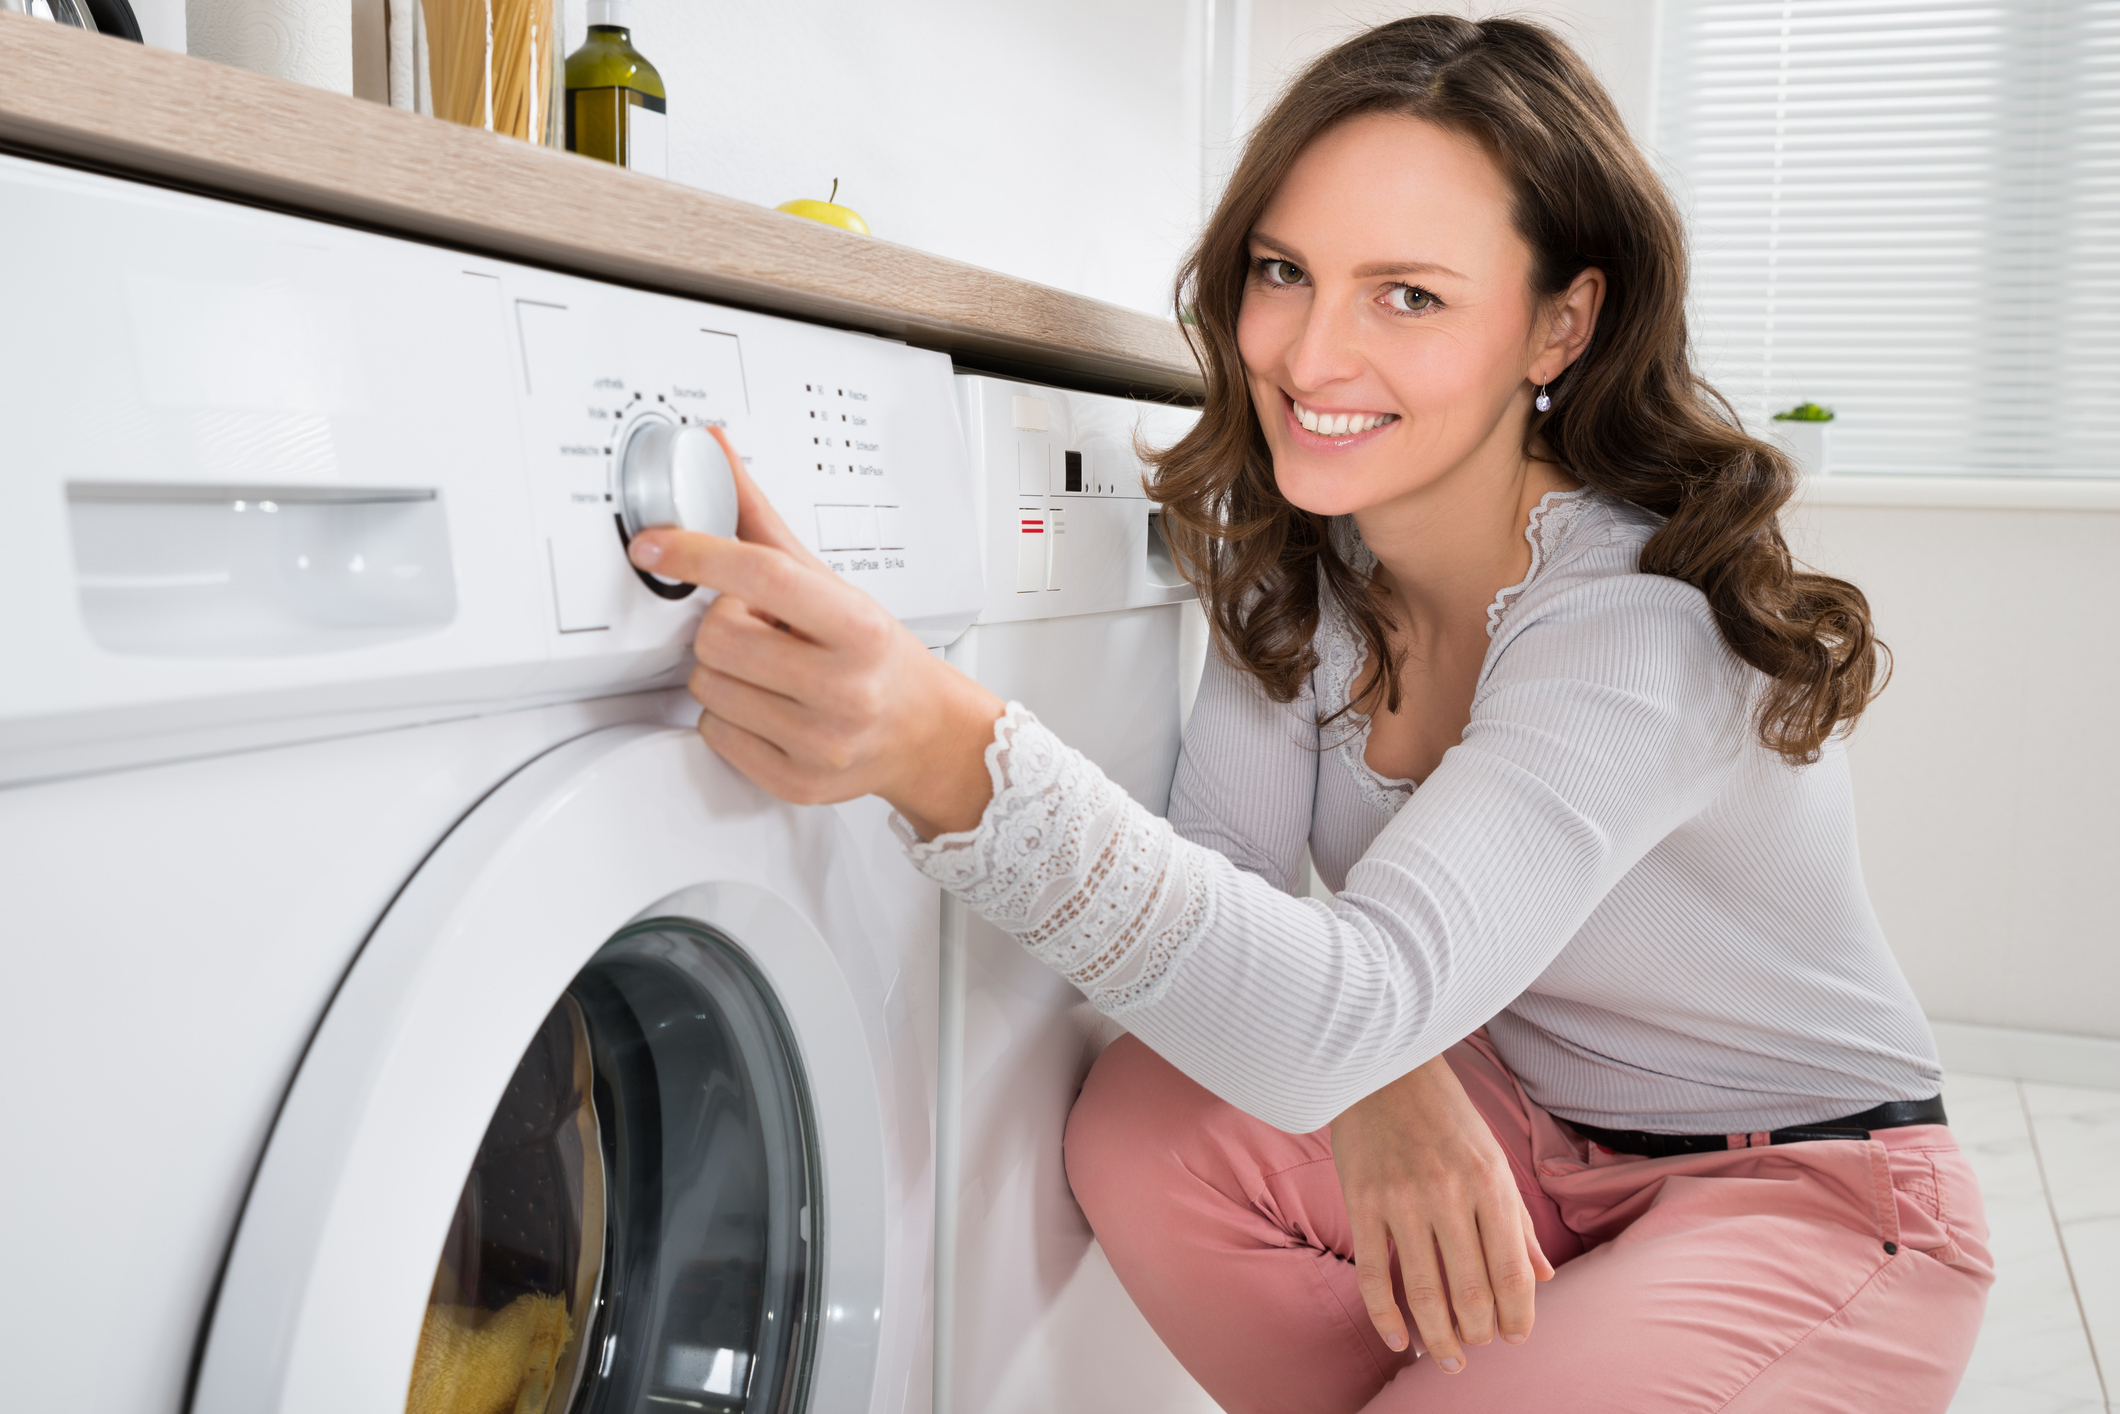 Image of washing machine